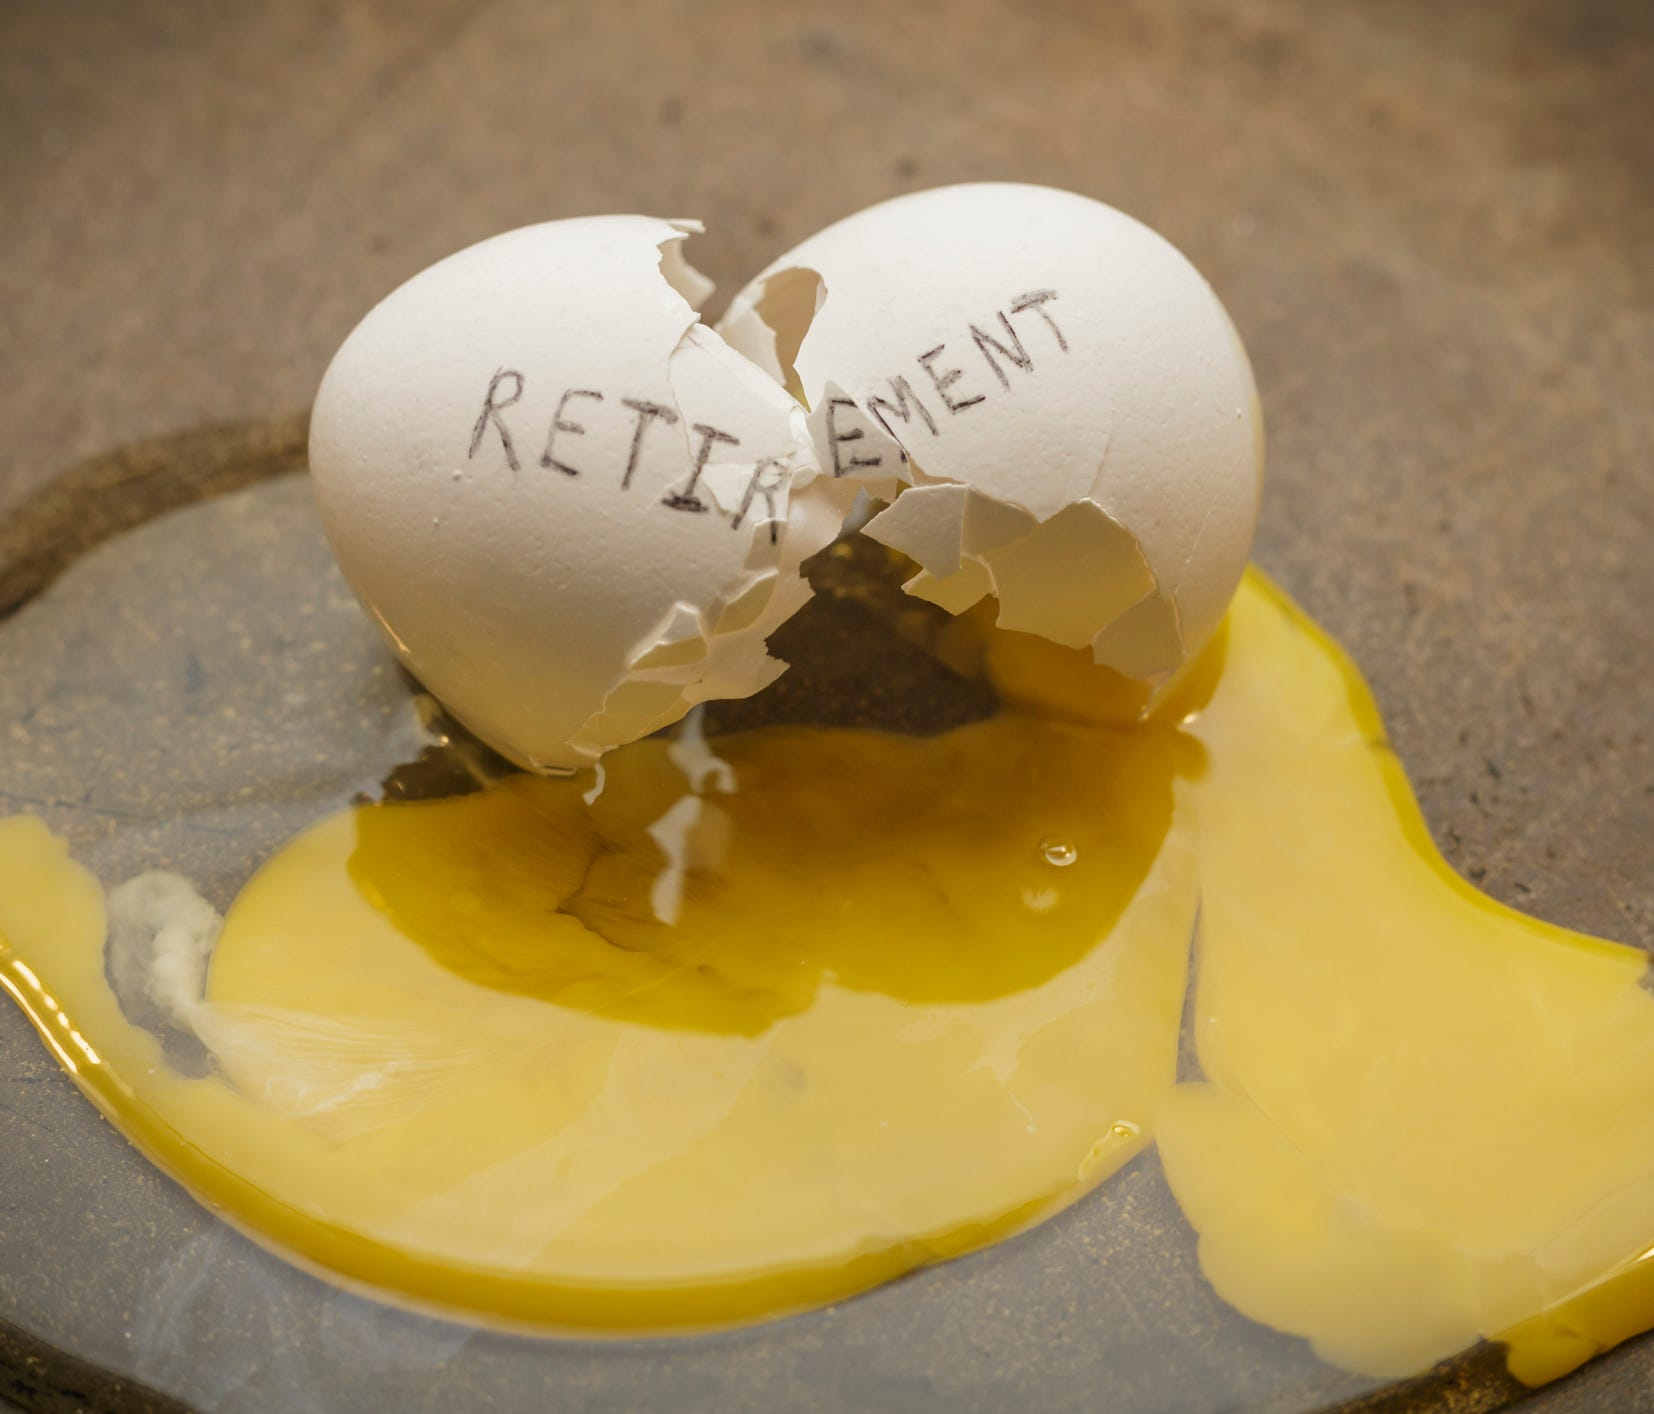 If you choose to ignore your future you can end up with a $0 nest egg at retirement.